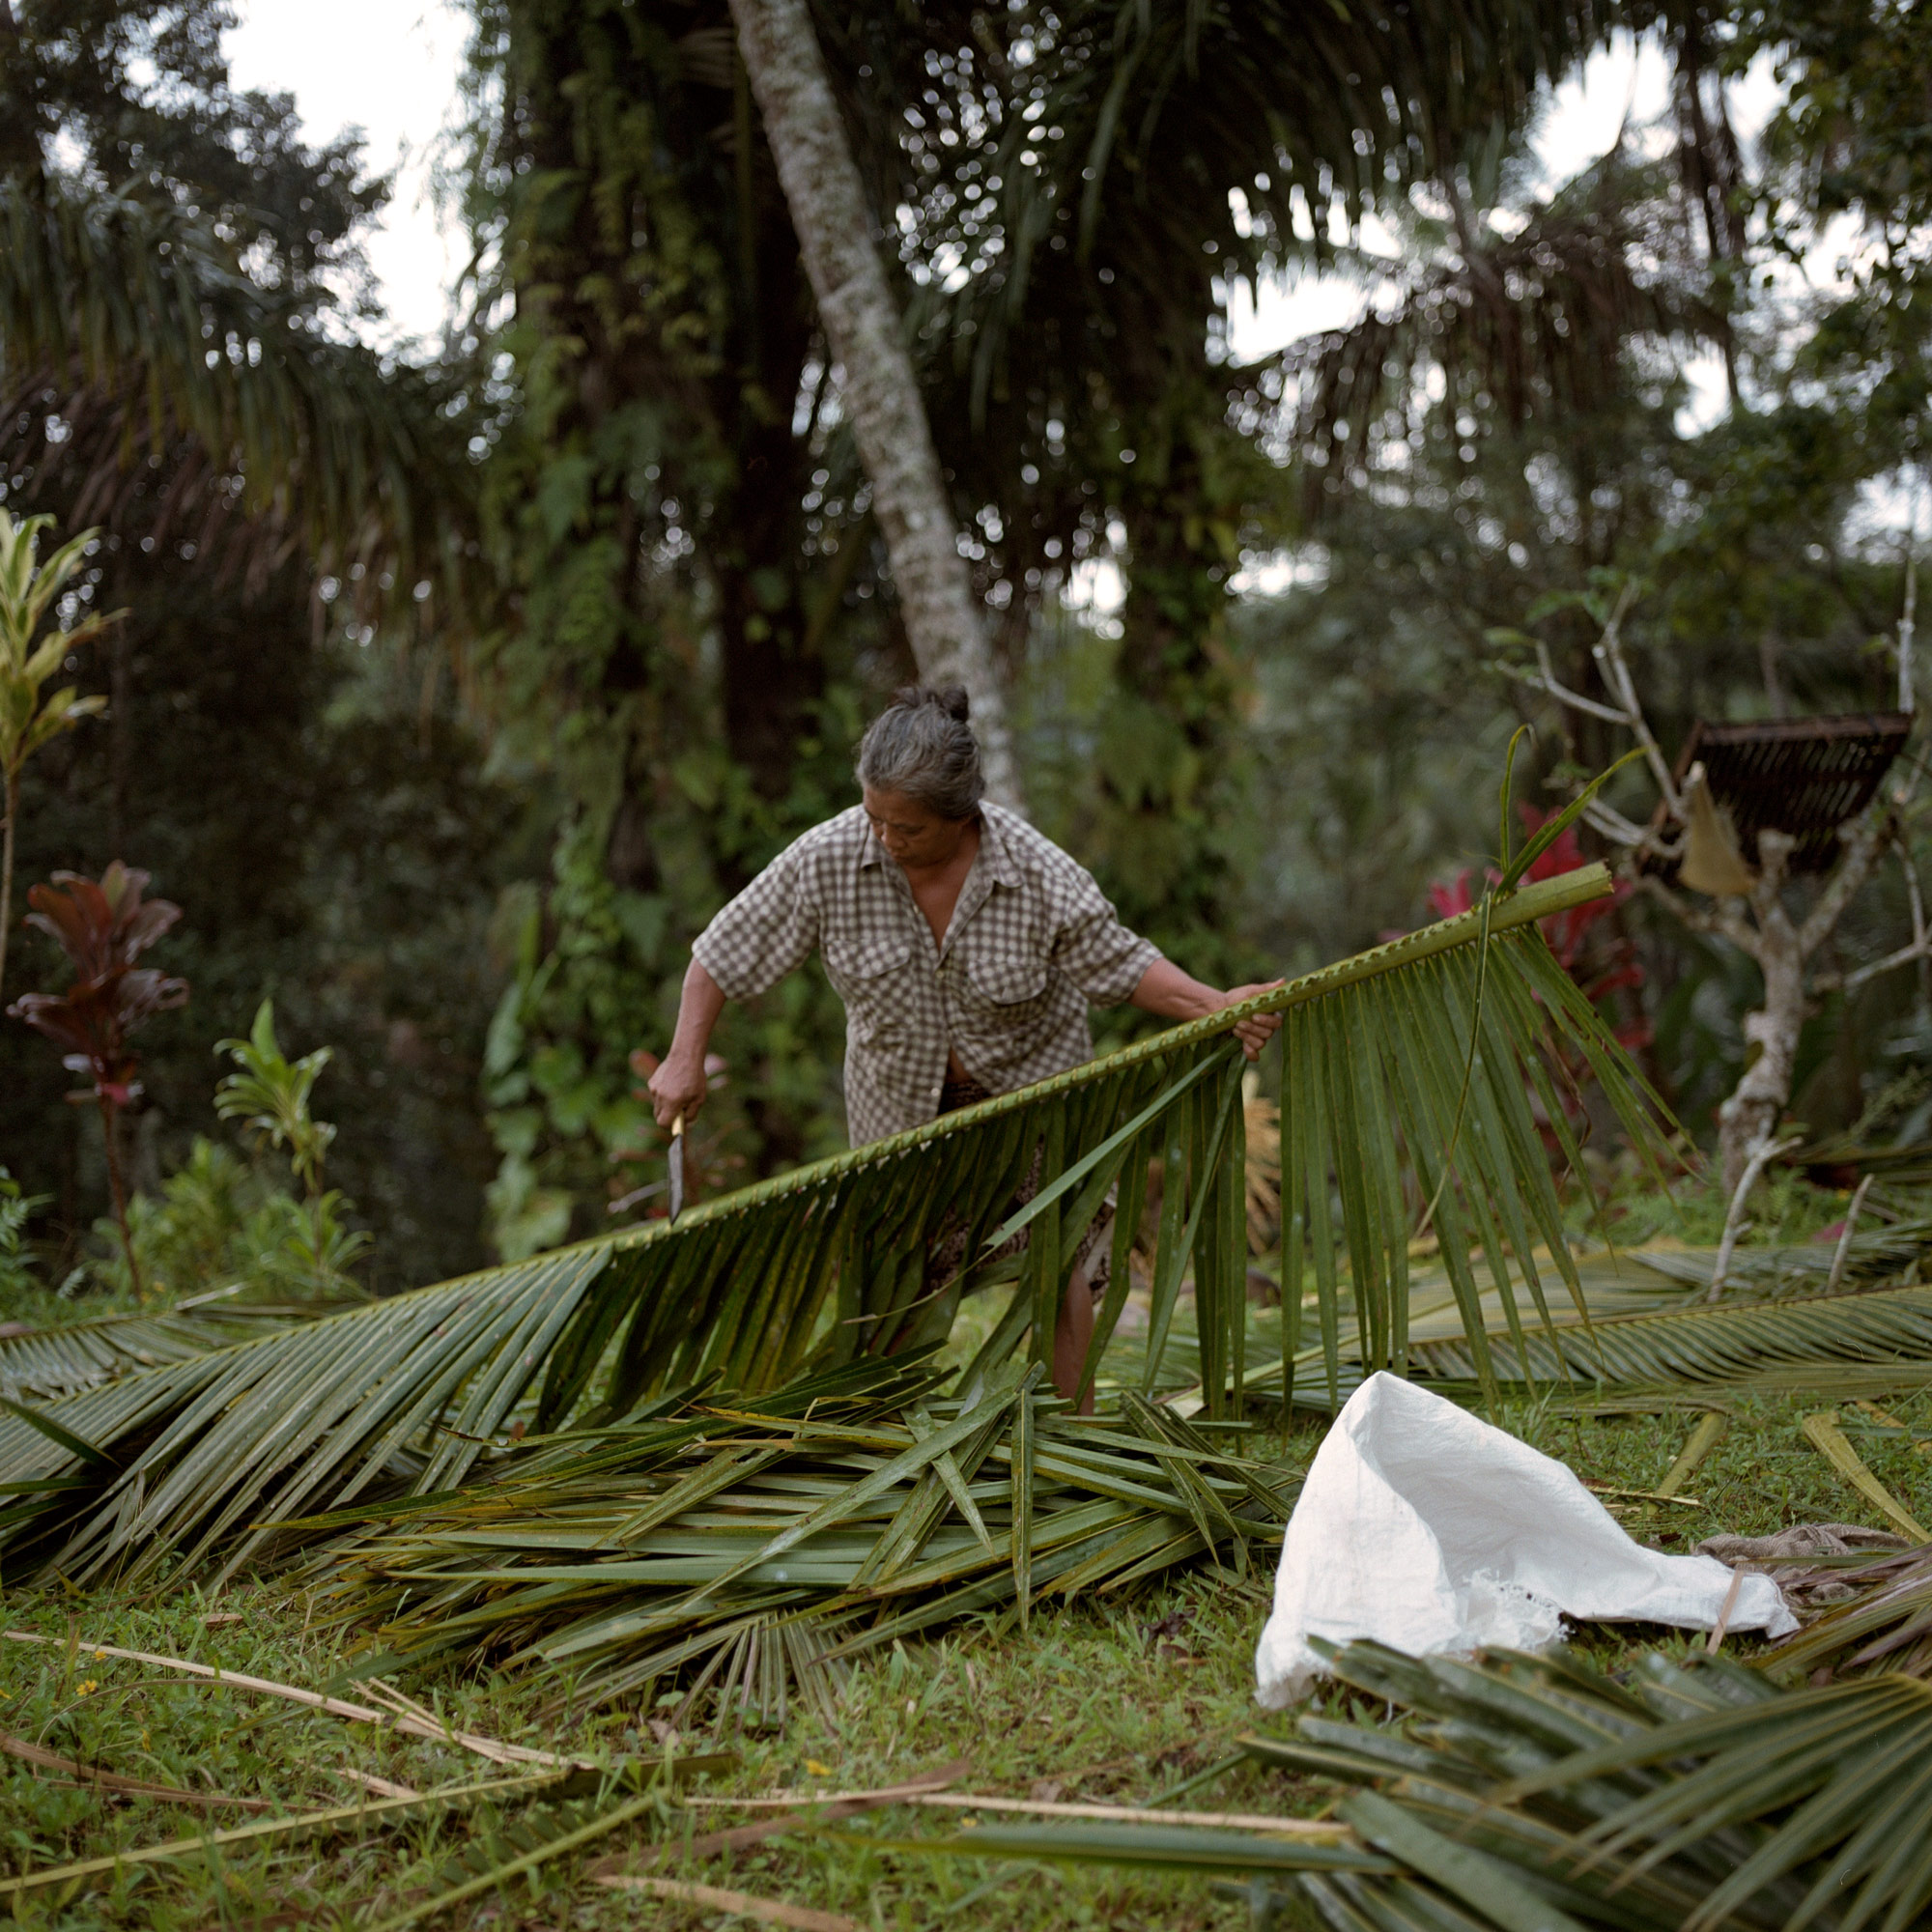 Ubud Woman Cutting Coconut Leaves, In Kedisah Ubud Bali, Eastern Travels, Photography By Ioannis Koussertari